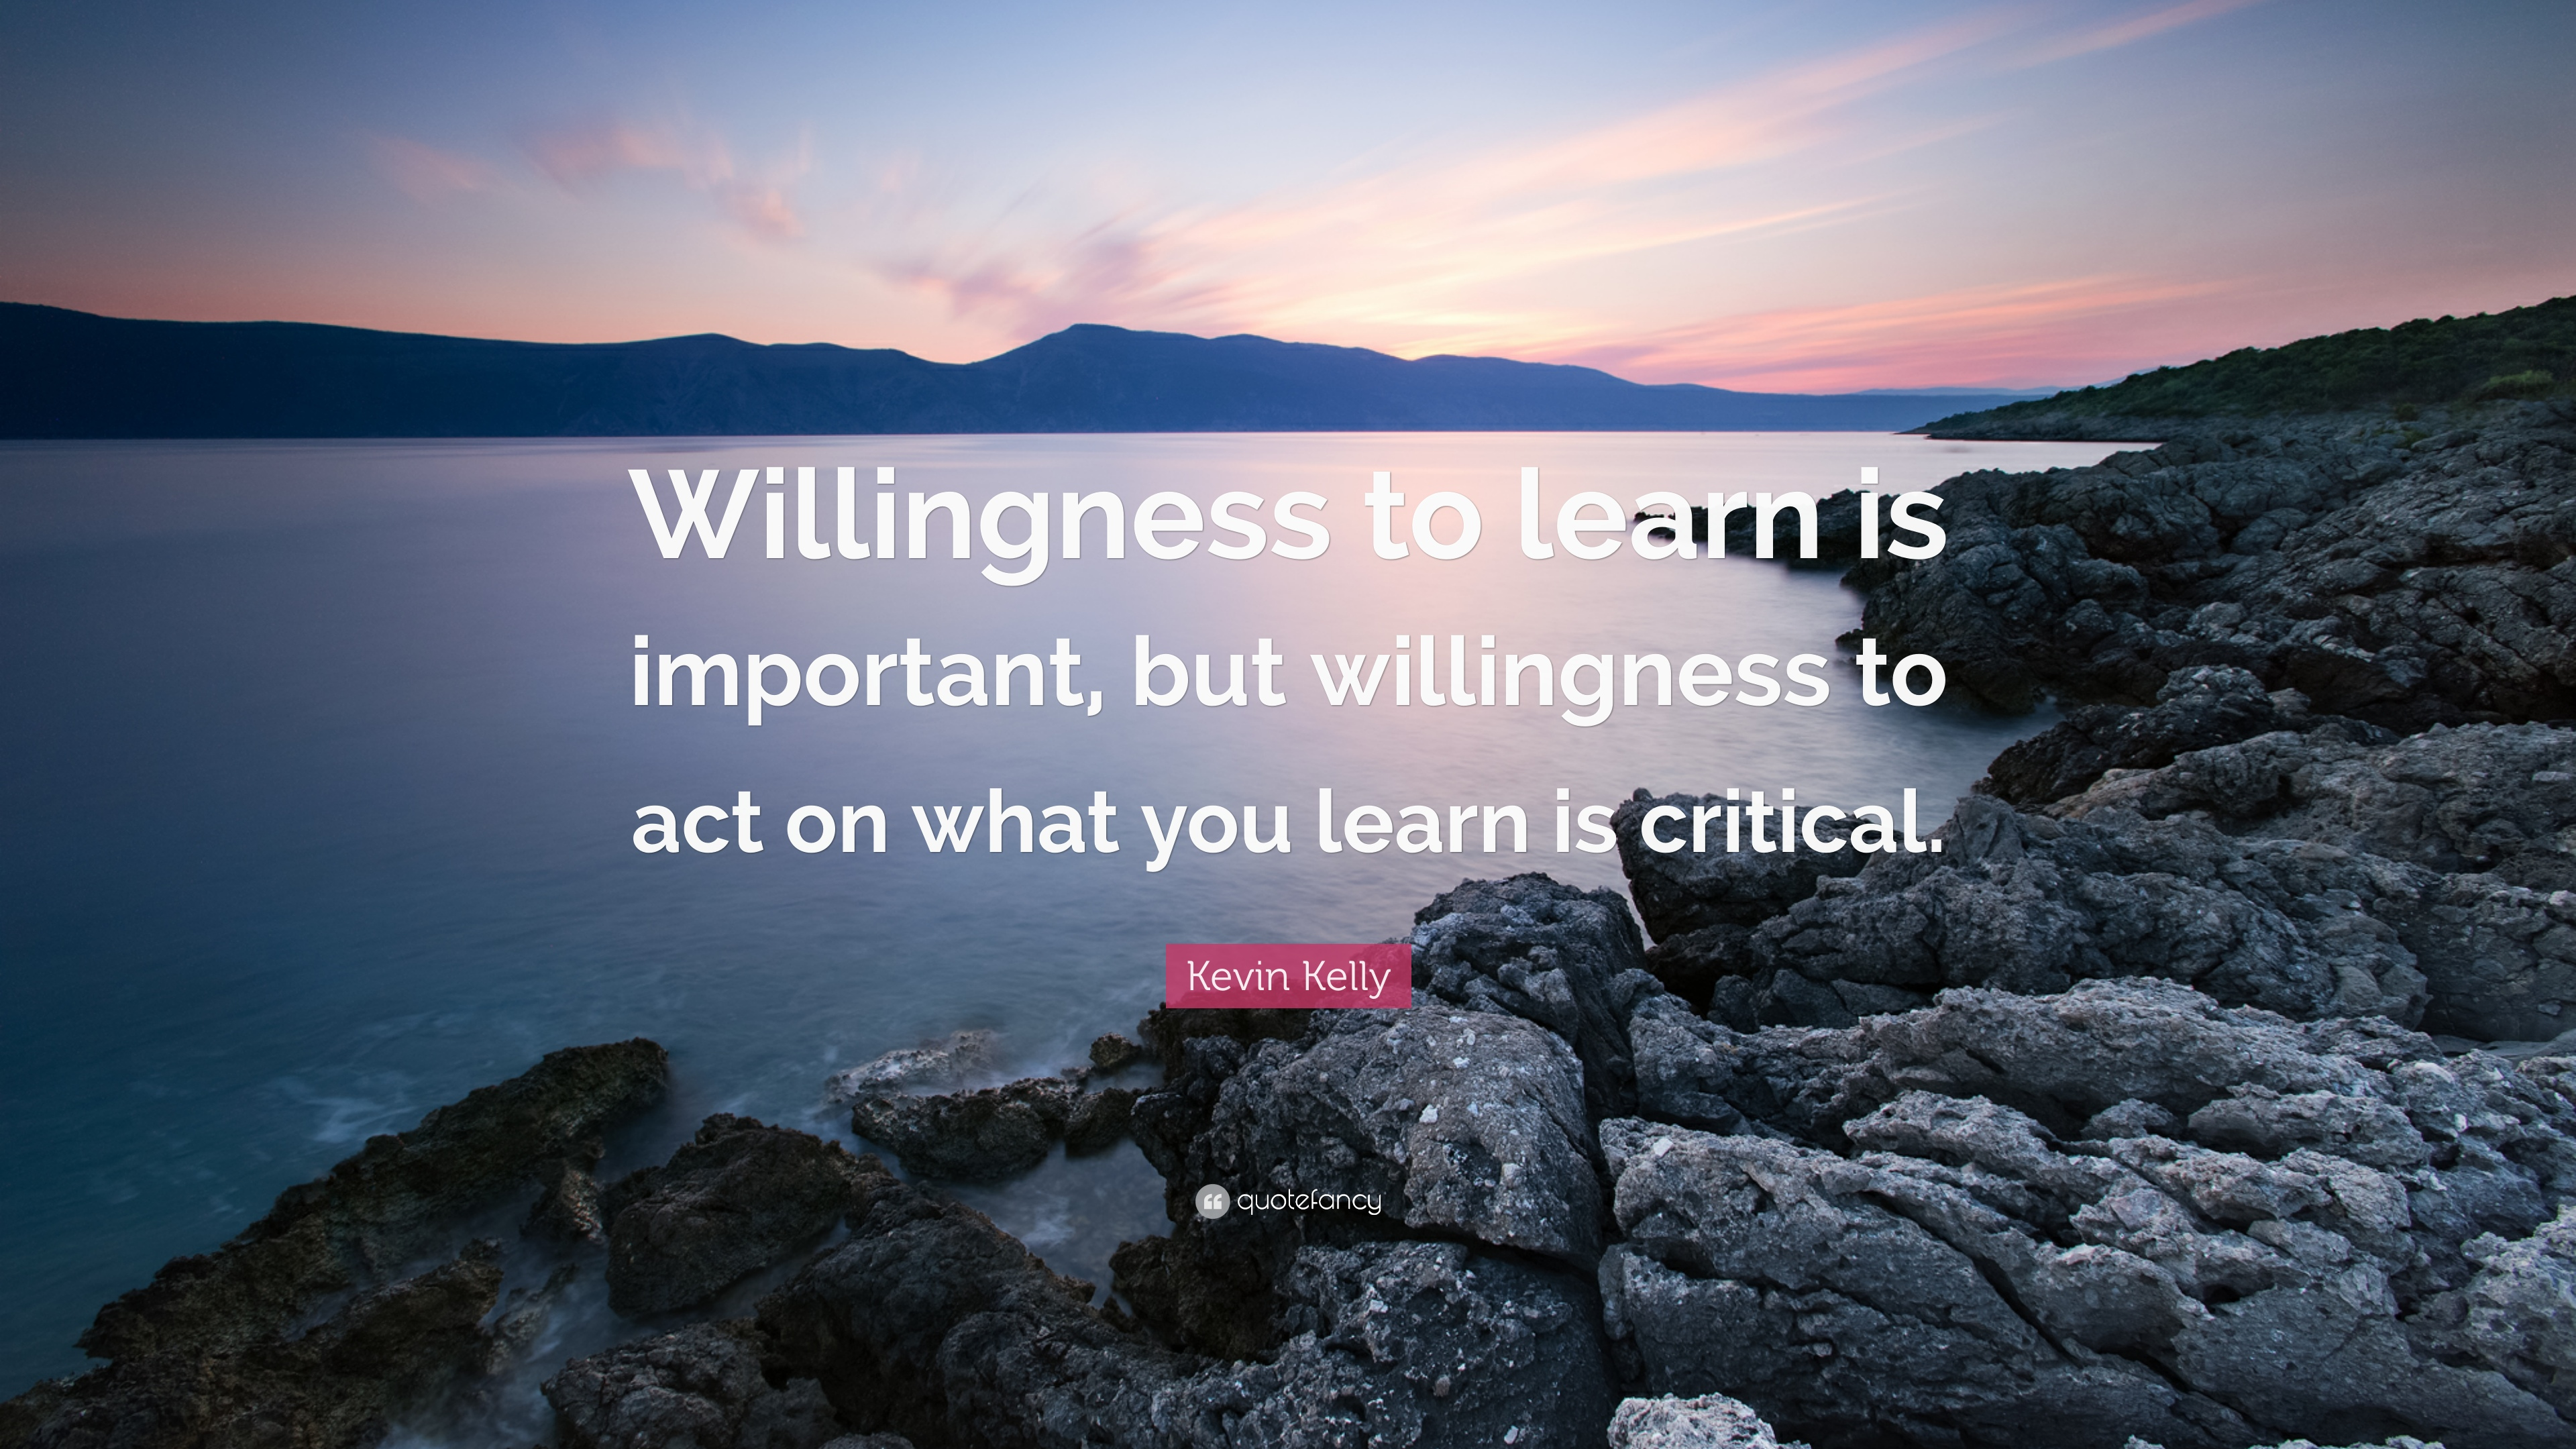 kevin kelly quotes quotefancy kevin kelly quote willingness to learn is important but willingness to act on